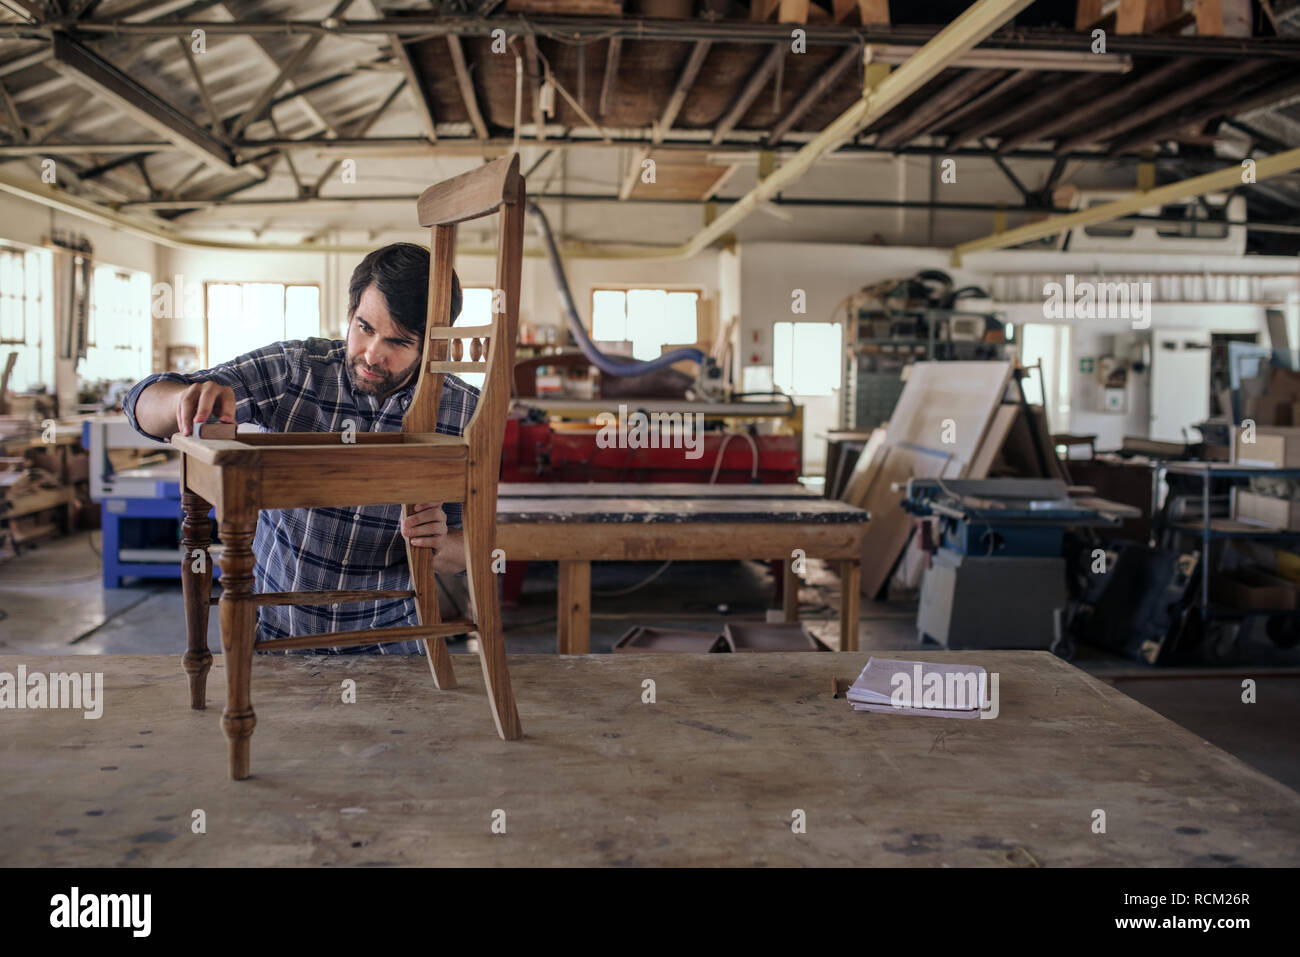 Woodworker sanding a chair on his workshop table - Stock Image